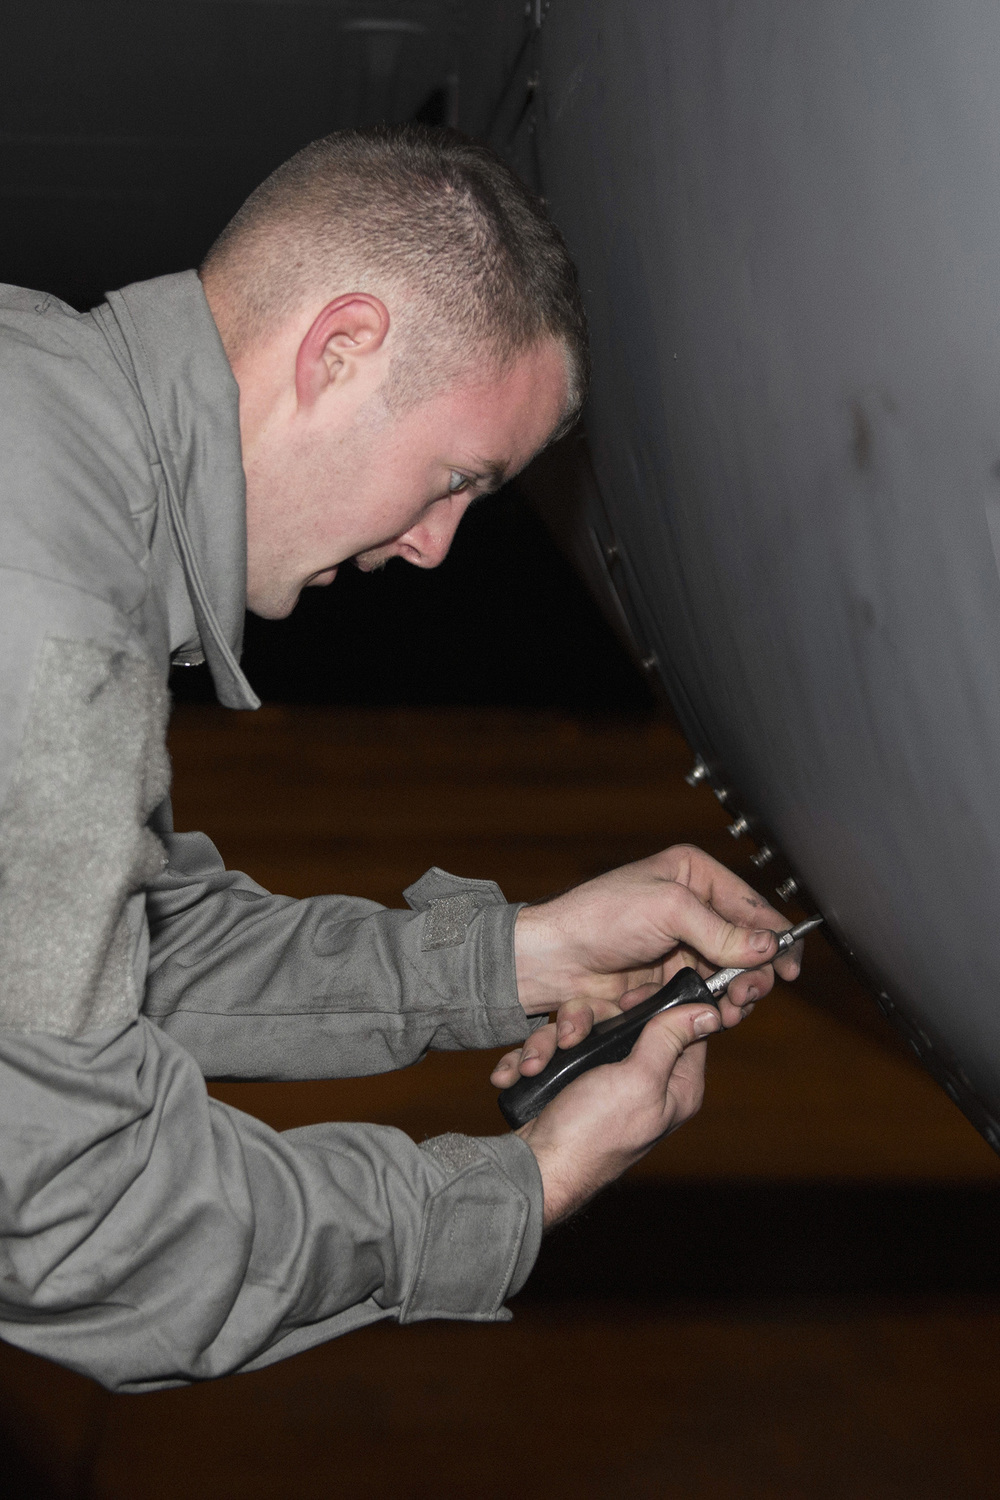 A member of the 374th Aircraft Maintenance Squadron tightens an engine panel on a C-130 Hercules during VIGILANT ACE 16 at Yokota Air Base, Japan, Nov. 2,2015. VIGILANT ACE is a U.S.-Republic of Korea combined exercise aimed at enhancing operational and tactical level coordination through combined and joint combat training. The exercise also provides critical training for the Airmen of the 374th Airlift Wing to maintain peace and stability in Japan and the entire Indo-Asia Pacific region. (U.S. Air Force photo by Staff Sgt. Cody H. Ramirez/Released)